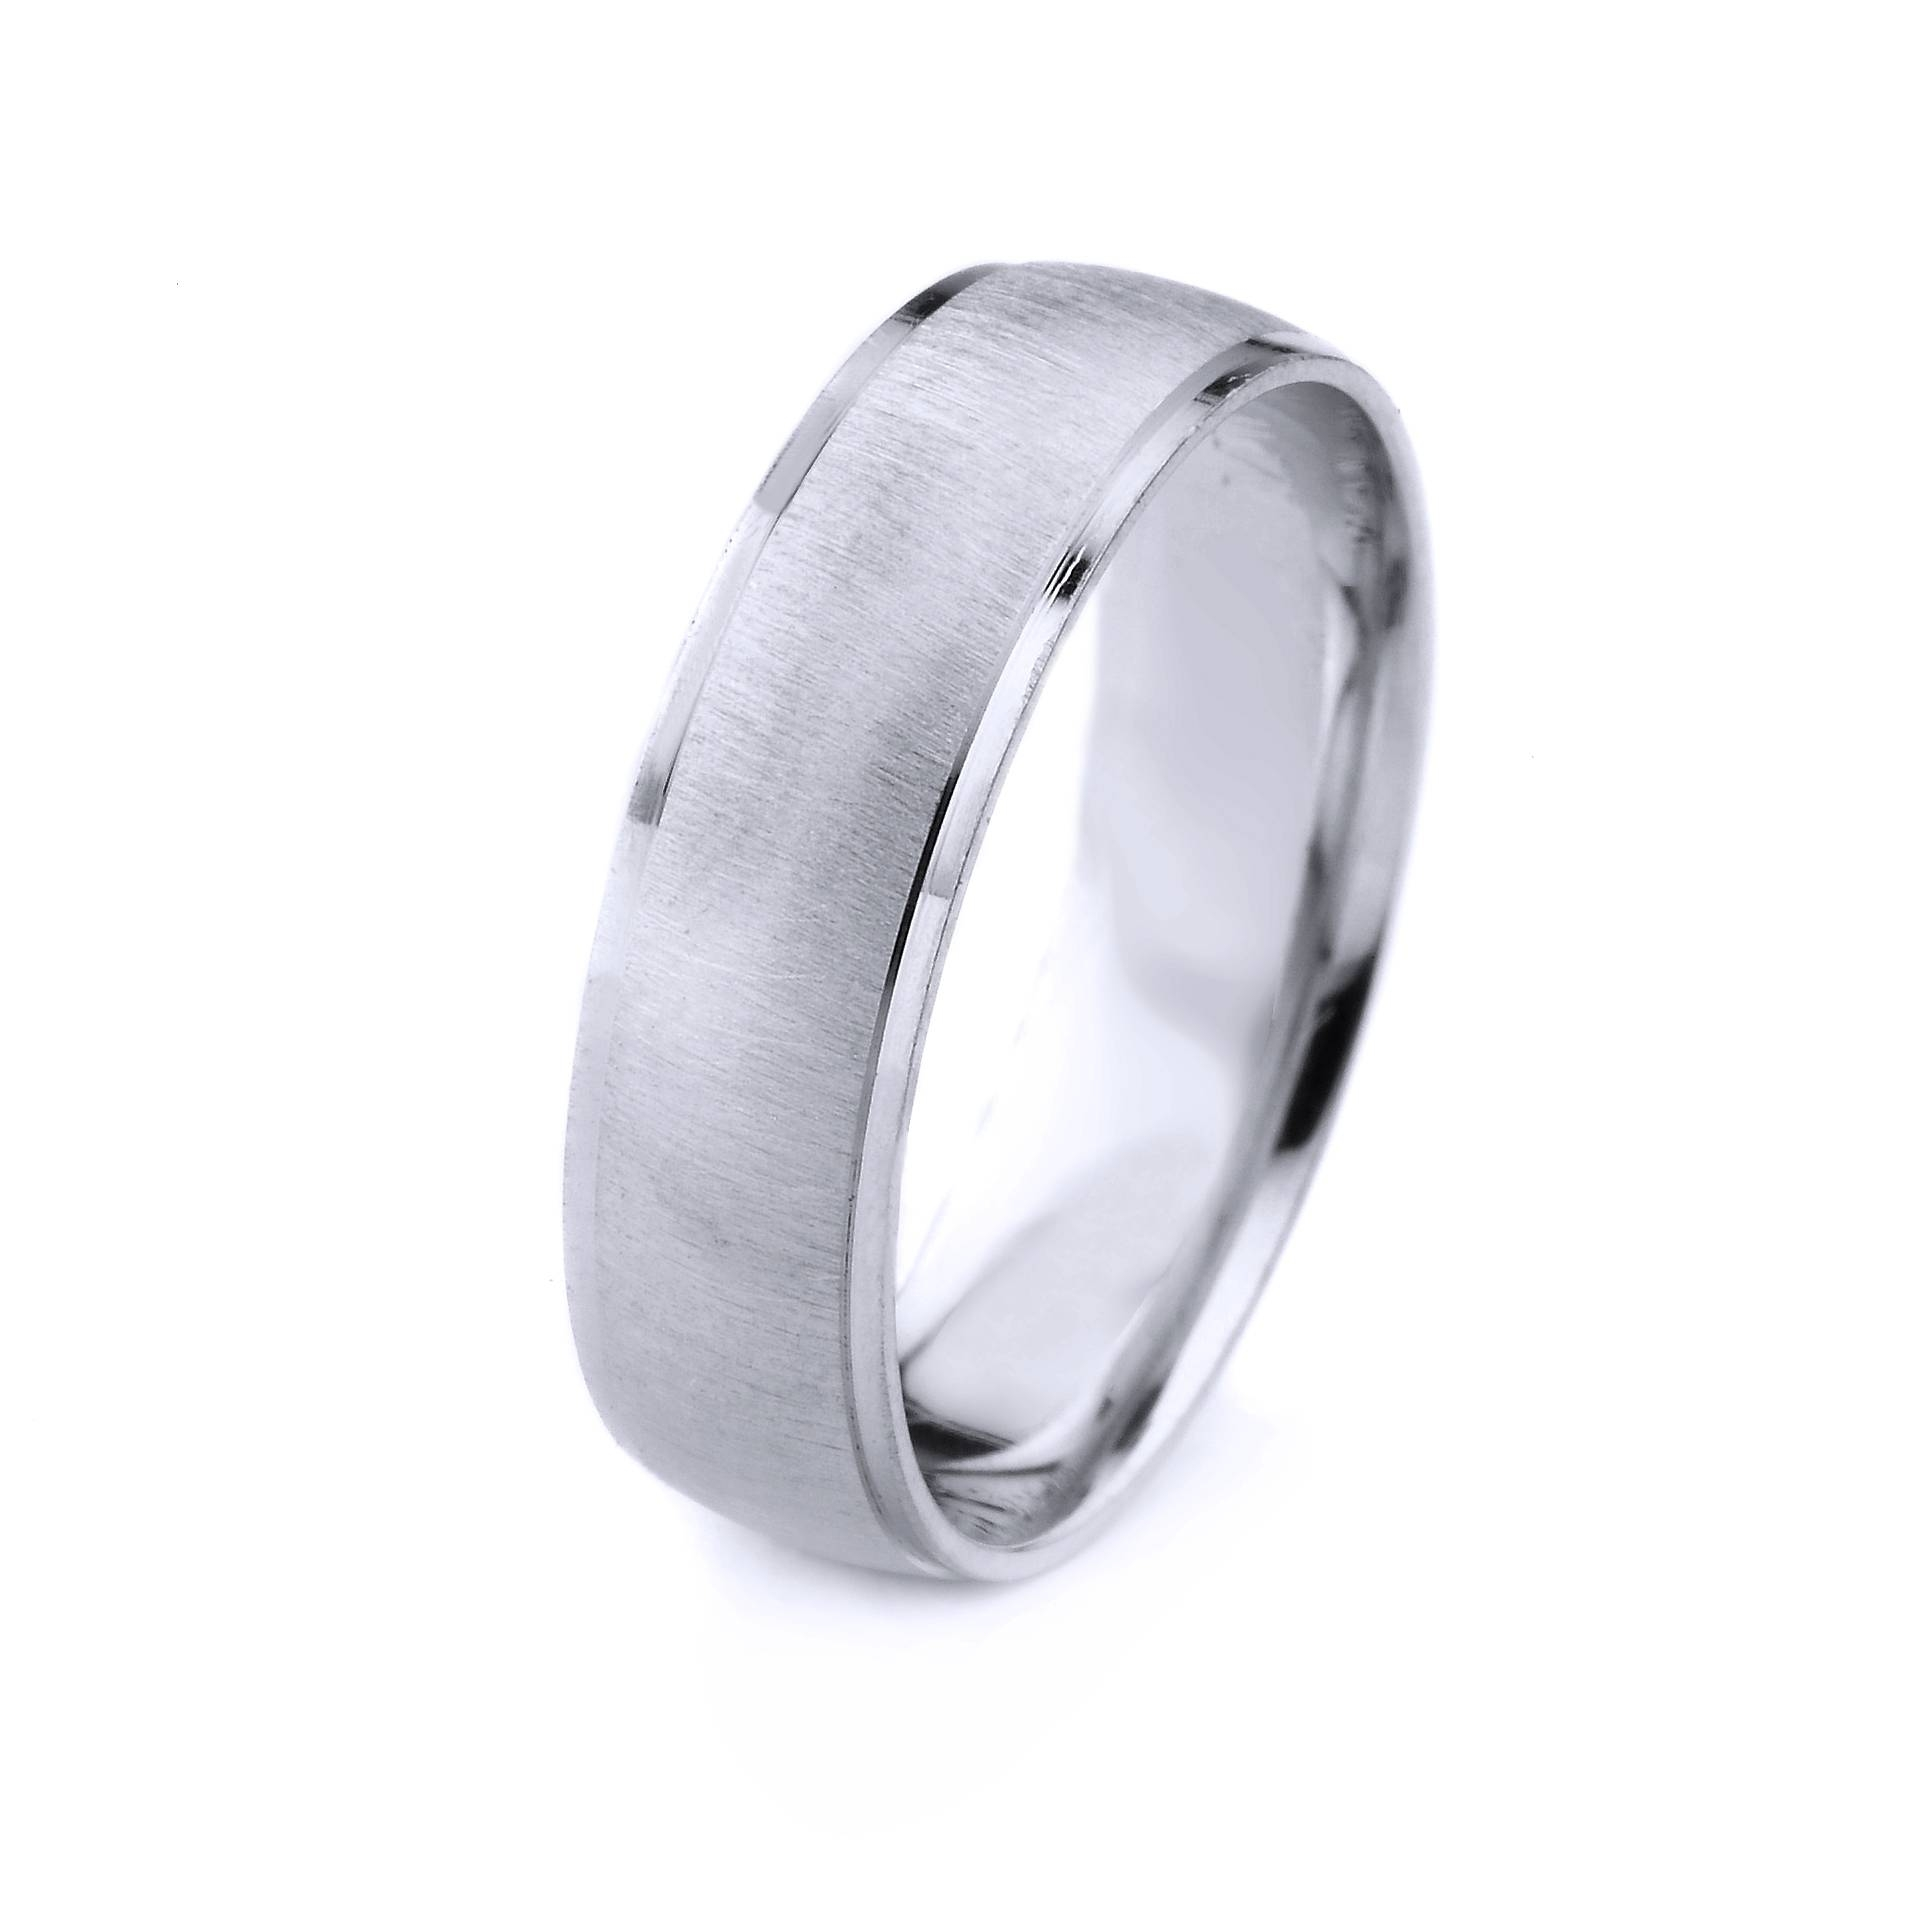 Platinum Mens Wedding Band With Cross Satin Finish And Cut With Regard To Men's Wedding Bands With Crosses (View 14 of 15)